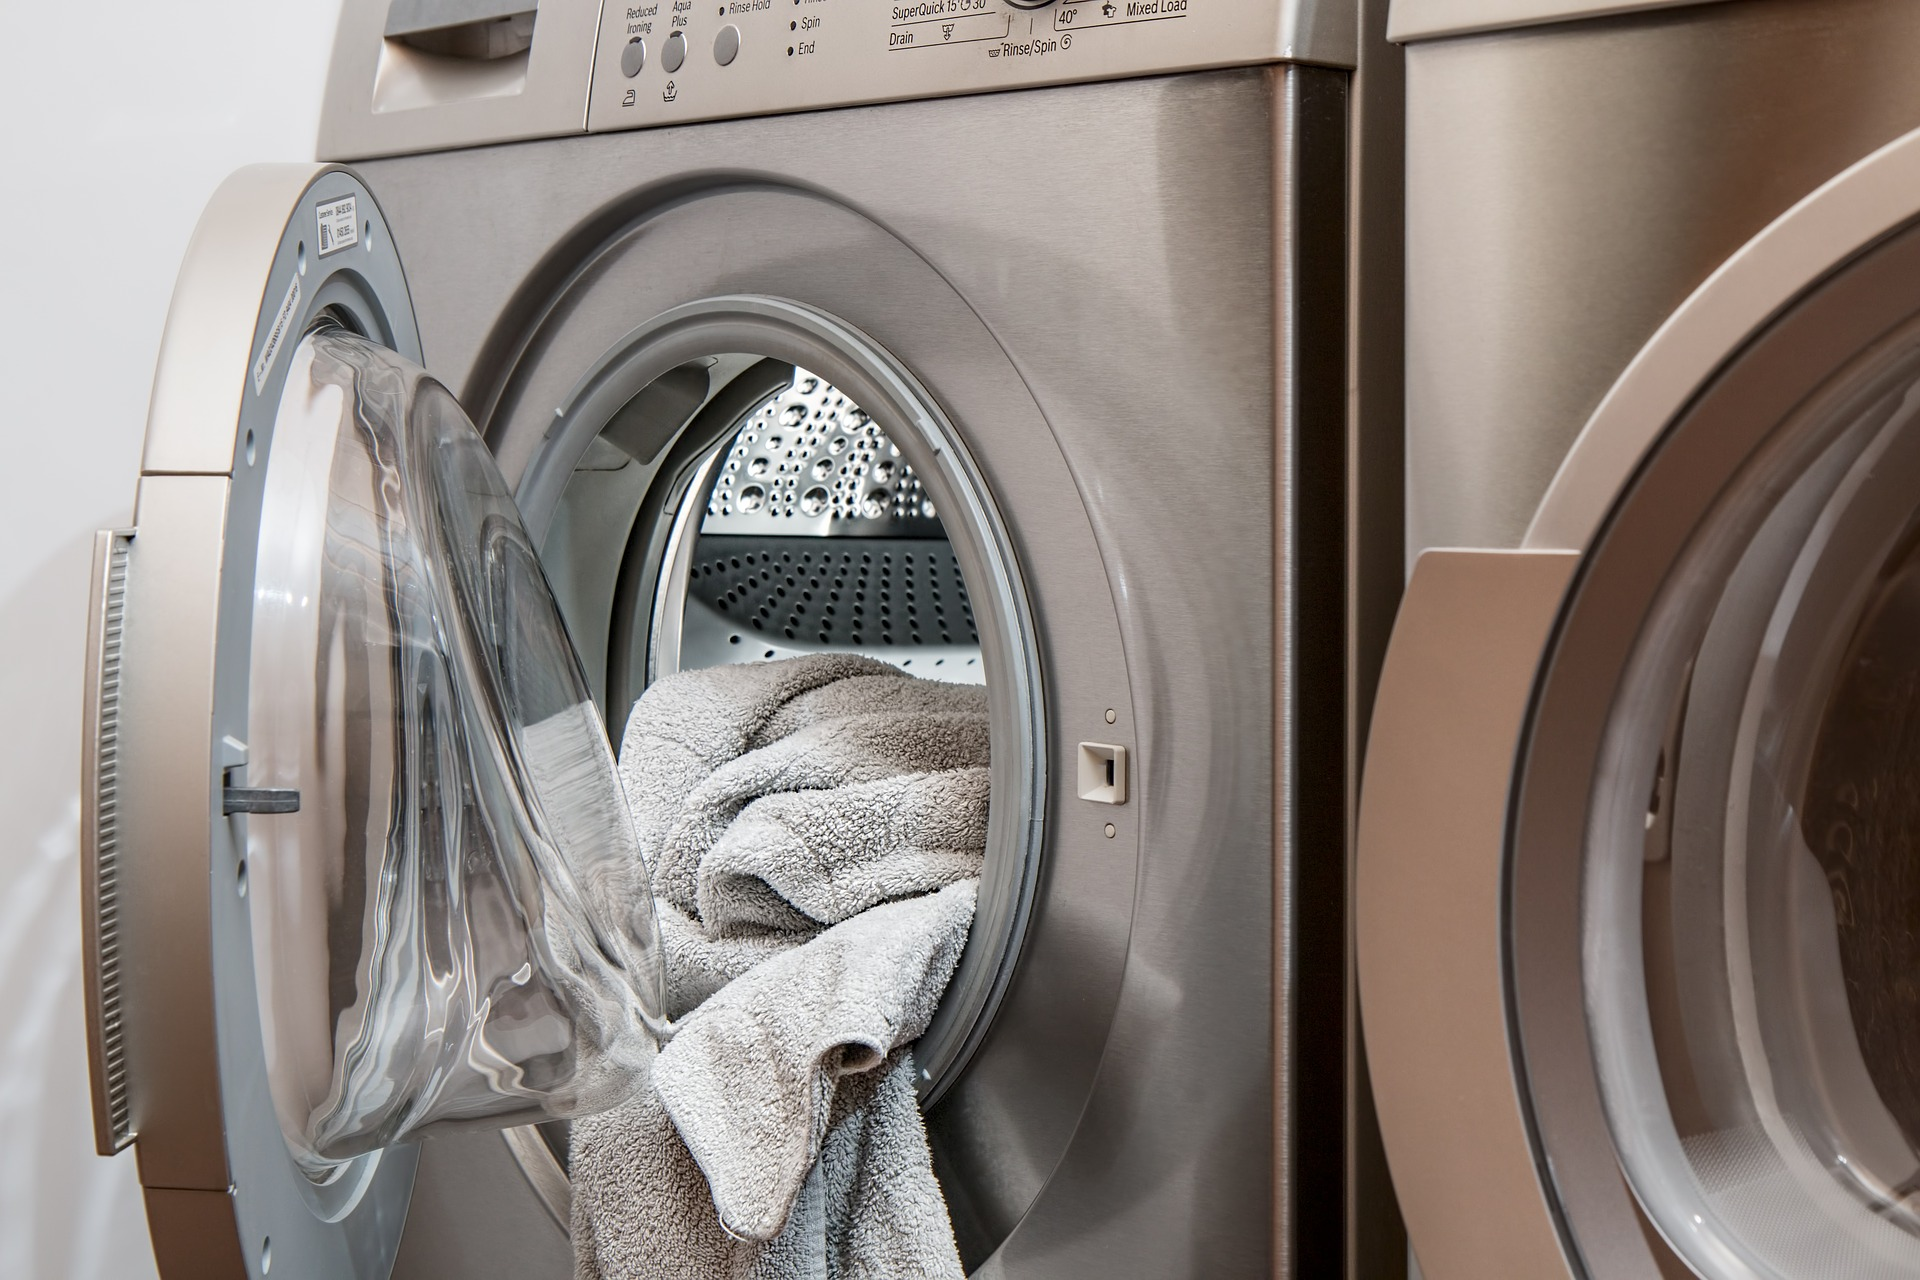 laundry machines with sweatshirt inside